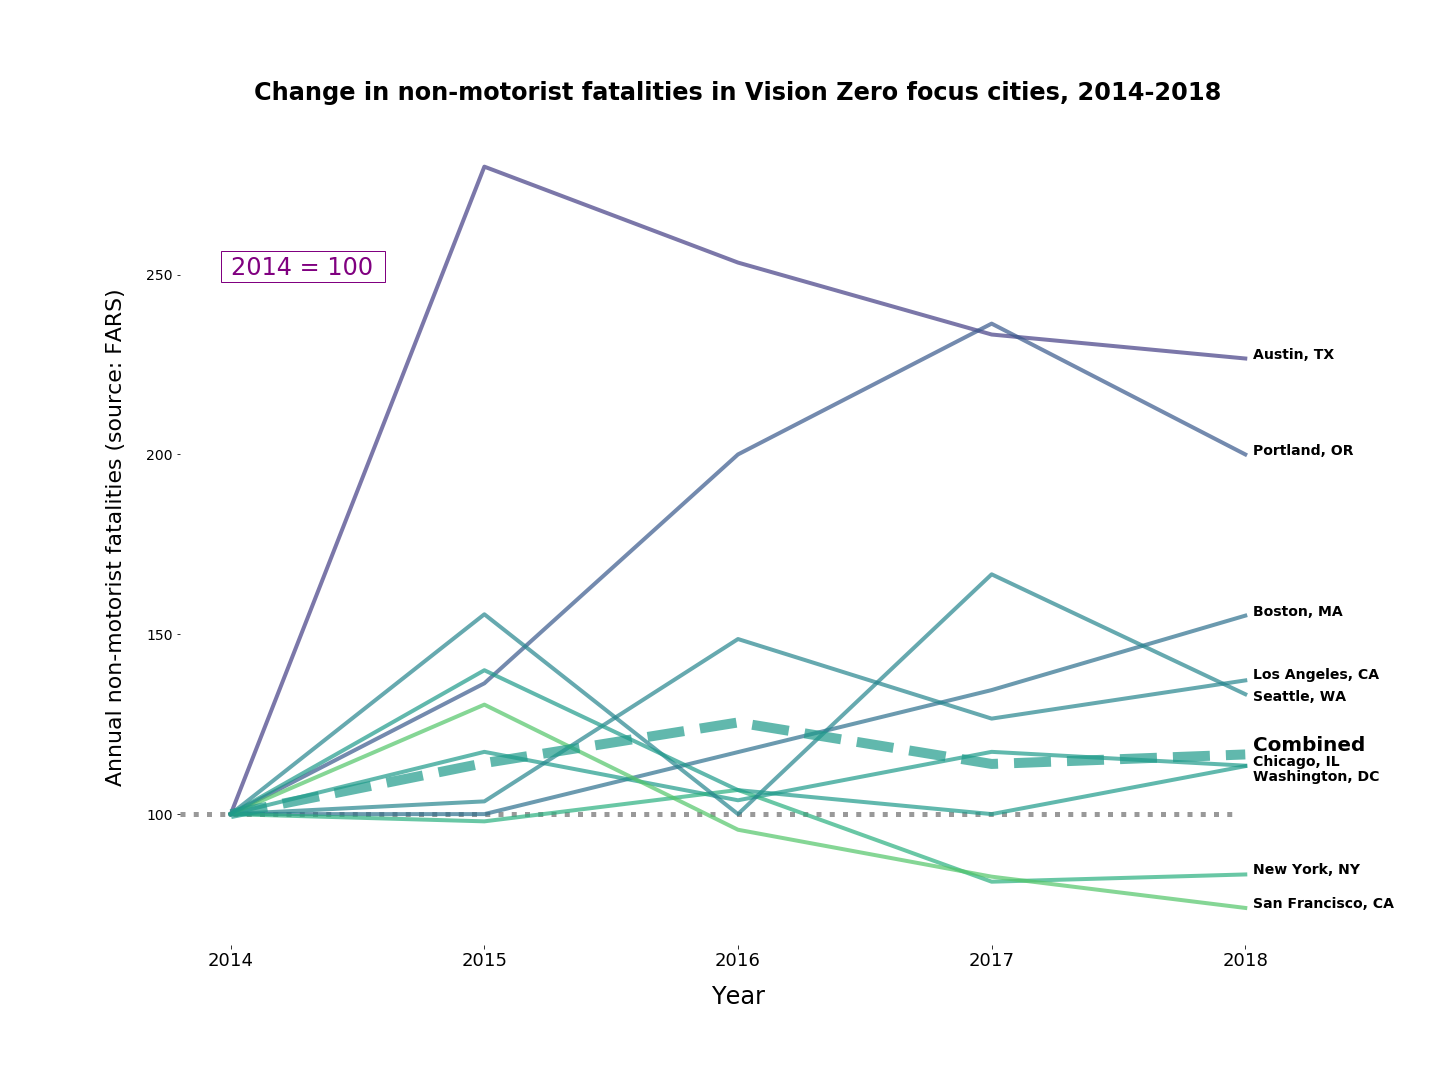 Chart showing non-motorist fatalities in Vision Zero cities from 2014-2018, showing an increase of about 20% over the period.